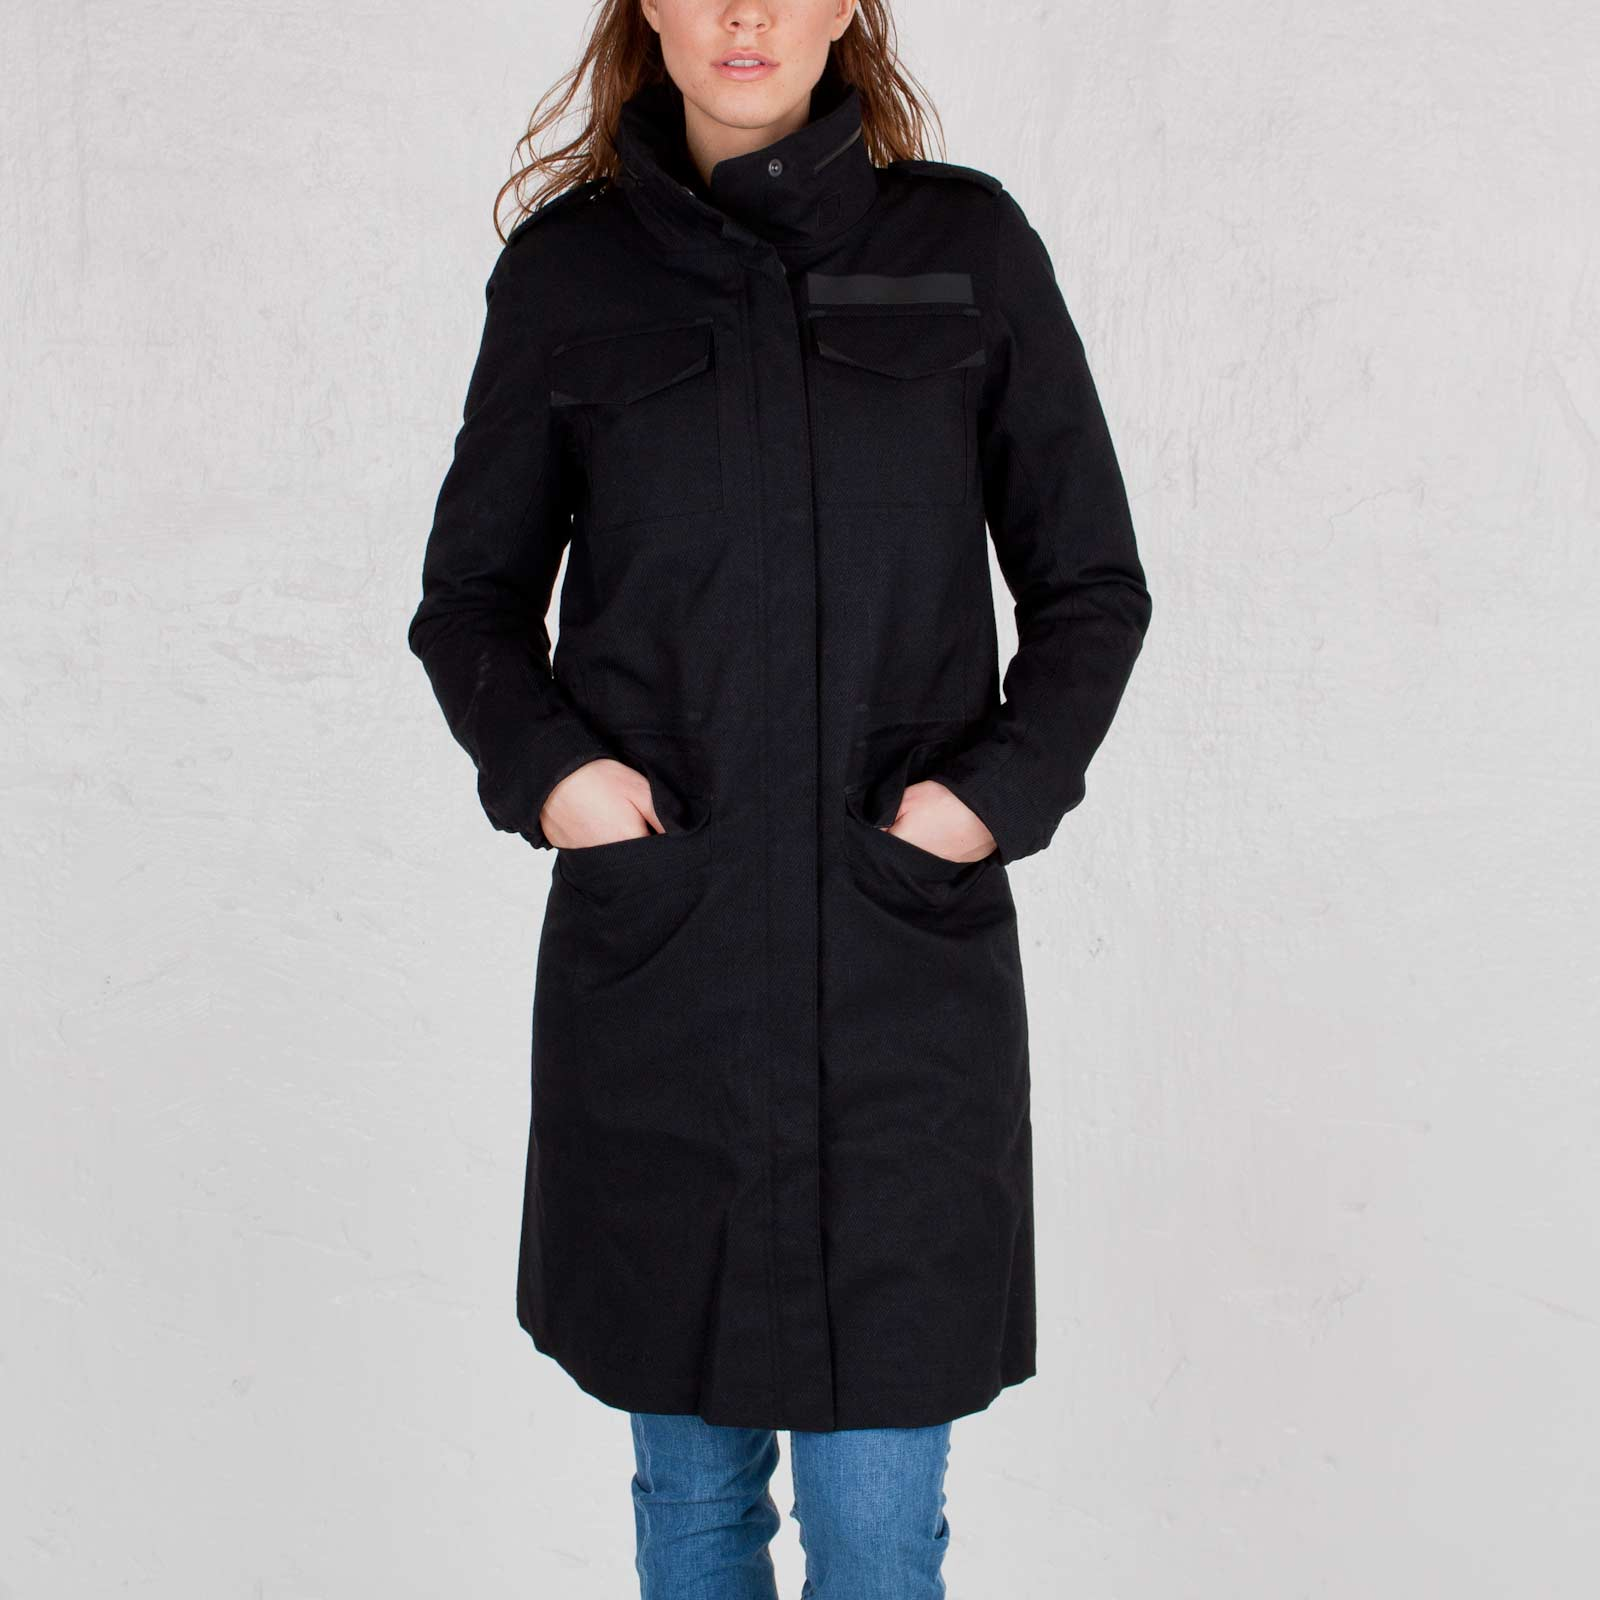 newest collection new images of buy cheap Nike NSW M65 3N1 Trench Coat - 111232 - Sneakersnstuff ...